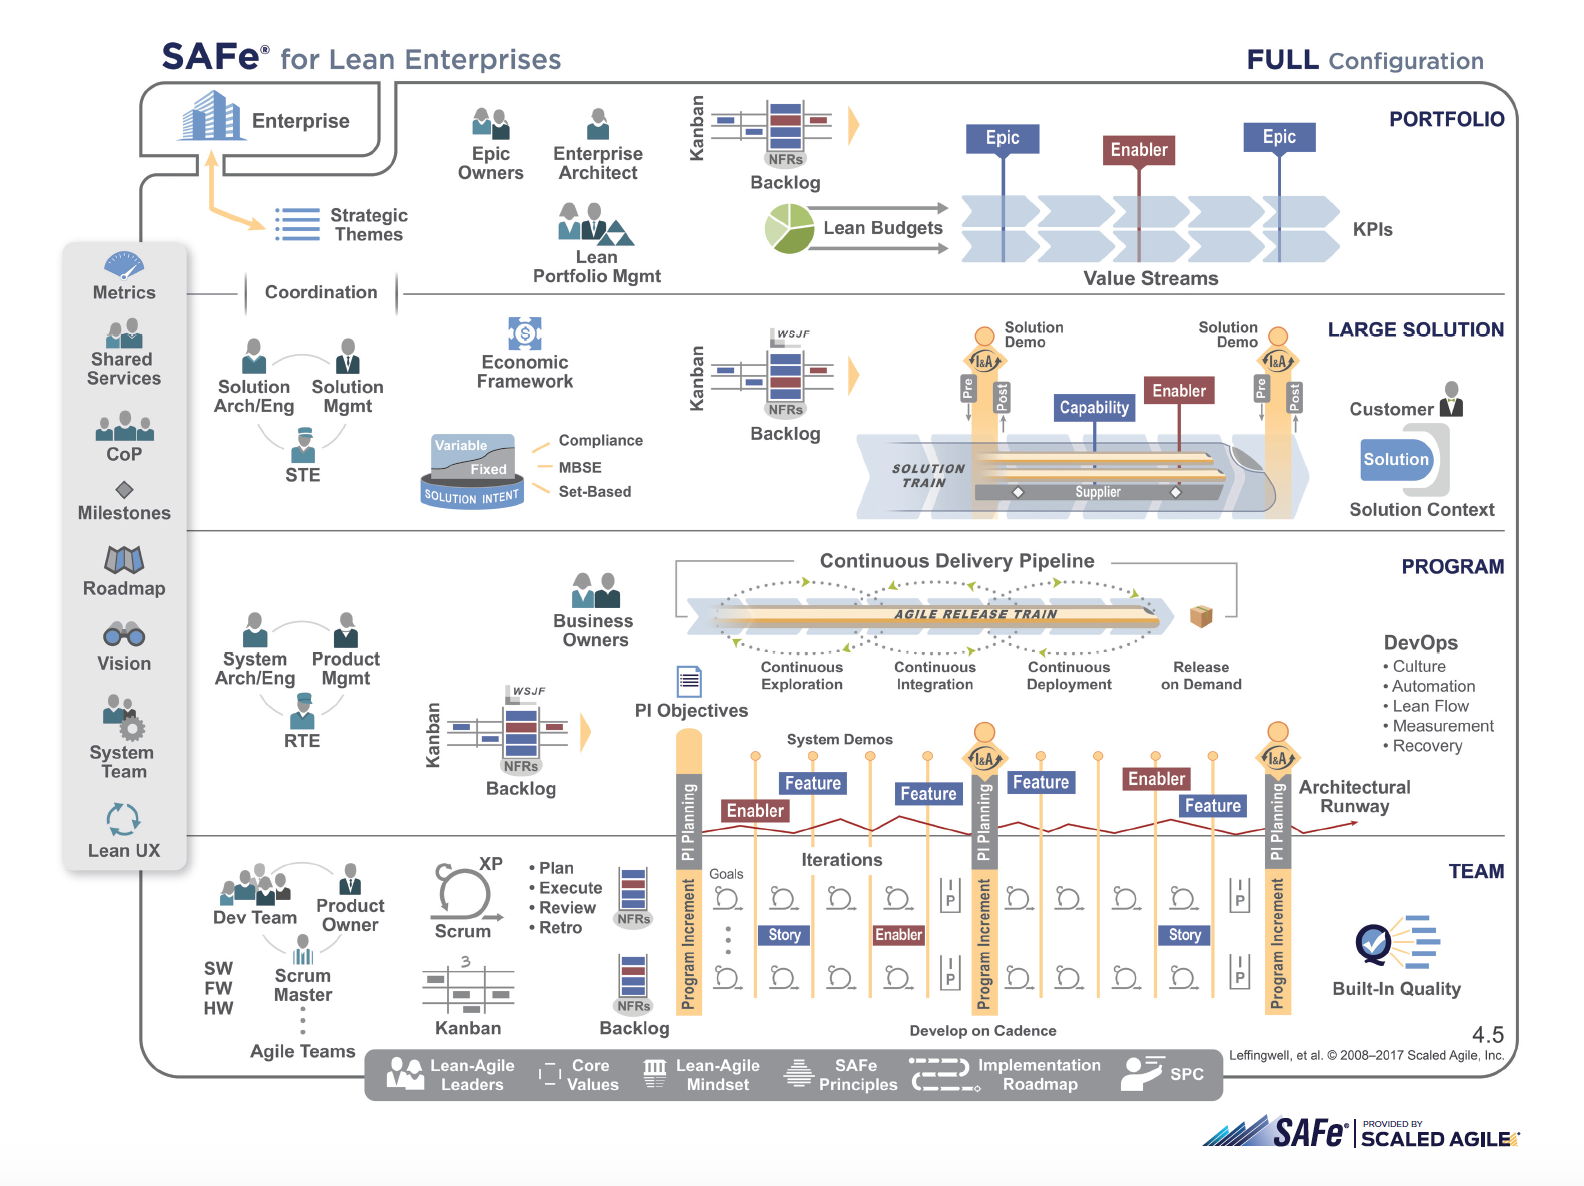 scaled agile framework Full picture.png